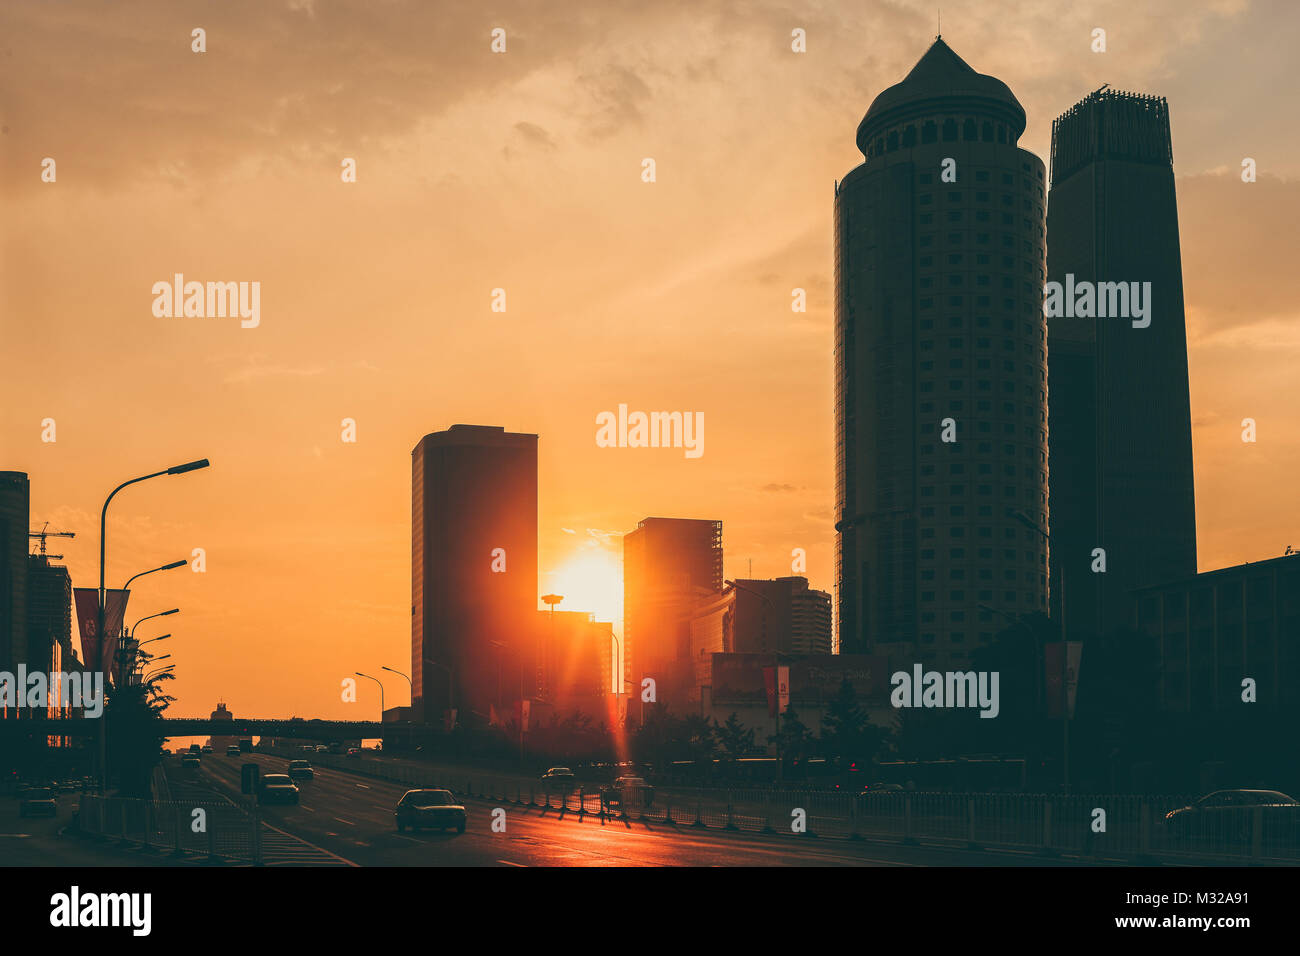 The scenery of urban architecture in Beijing - Stock Image